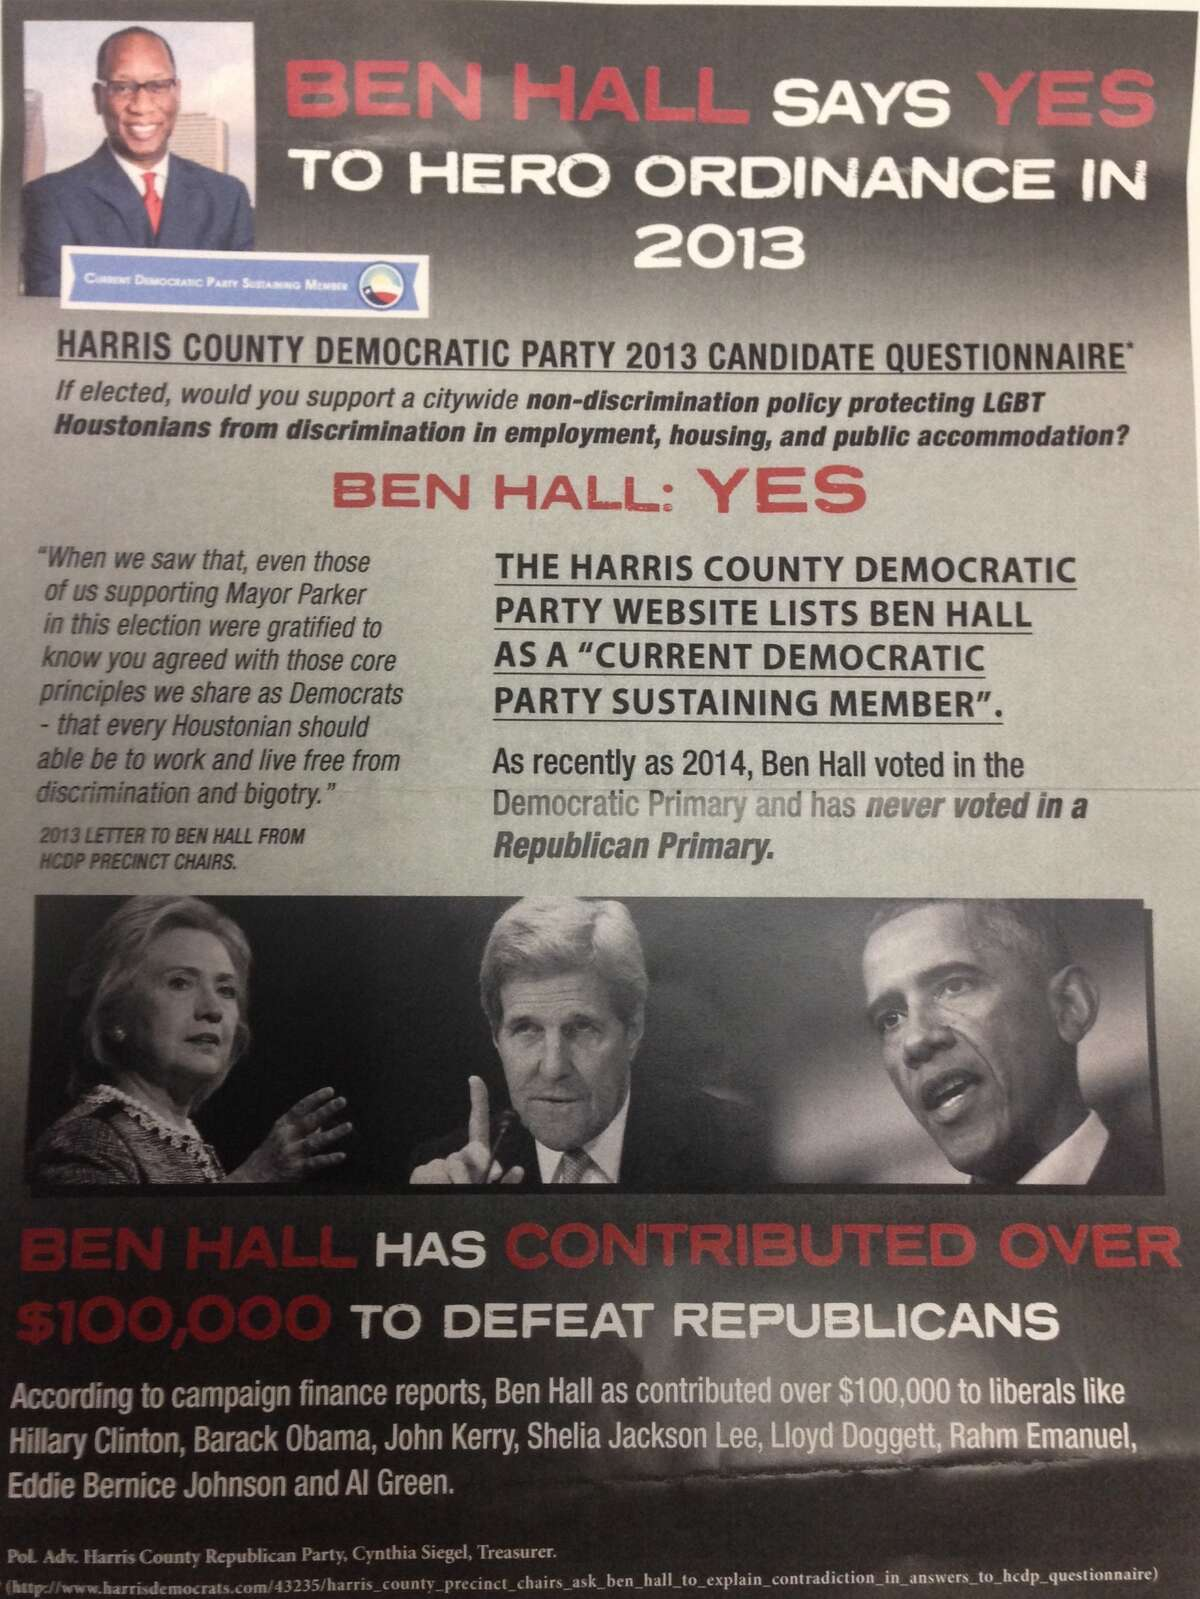 Harris County Republican Party flyer criticizes Houston mayoral candidate Ben Hall's record.